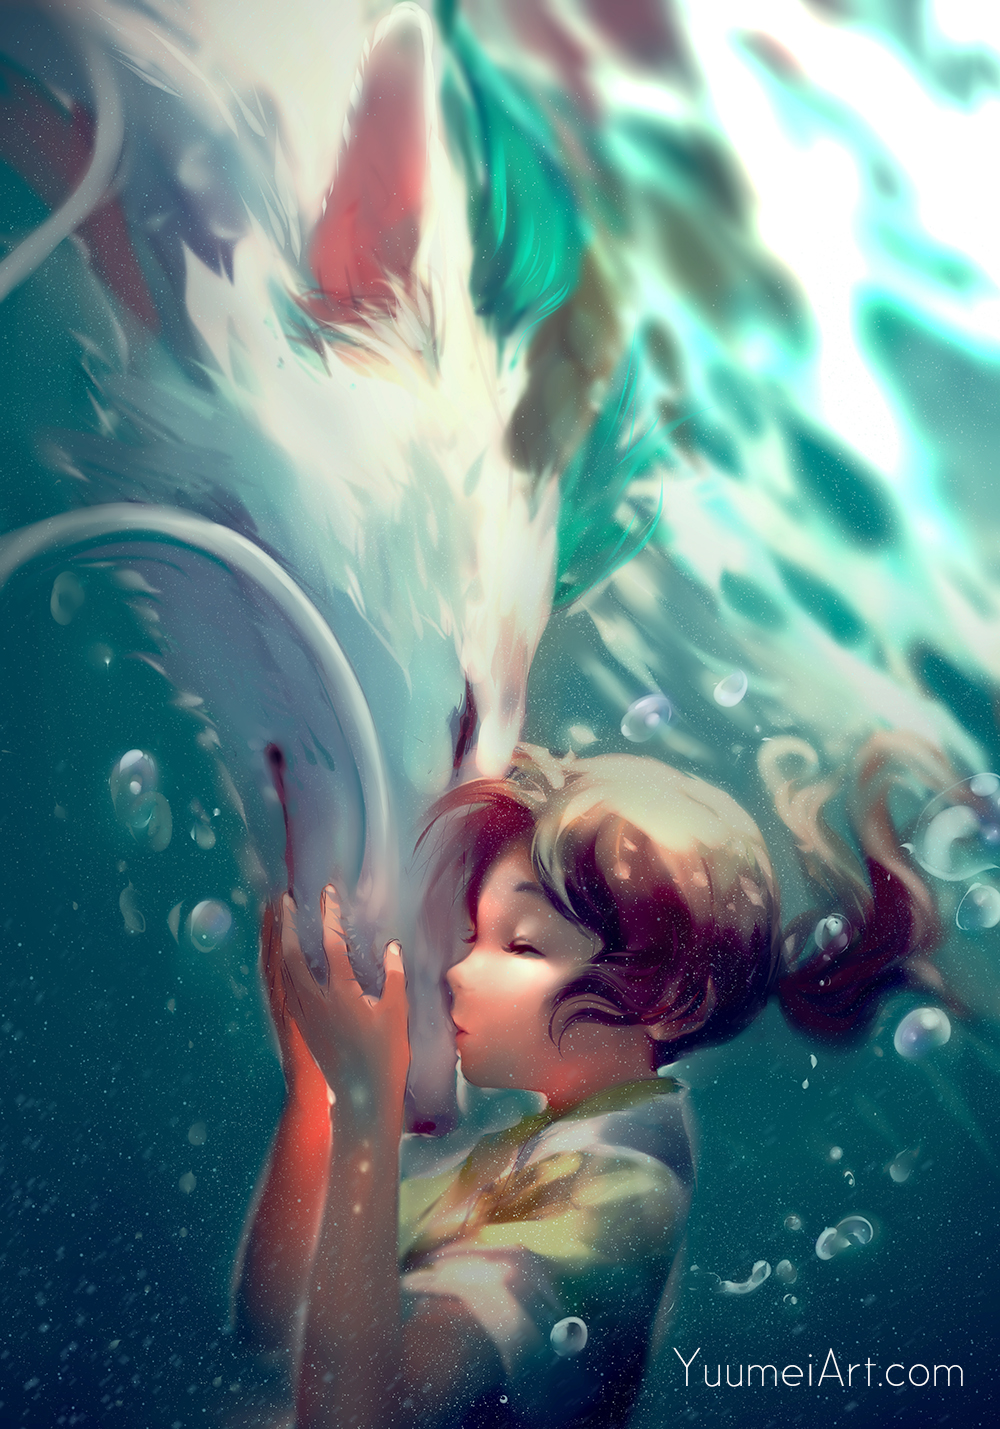 1girl brown_hair closed_eyes commentary dragon eastern_dragon haku_(sen_to_chihiro_no_kamikakushi) hetero highres kiss nose_kiss ogino_chihiro ponytail sen_to_chihiro_no_kamikakushi short_hair underwater watermark web_address wenqing_yan whiskers